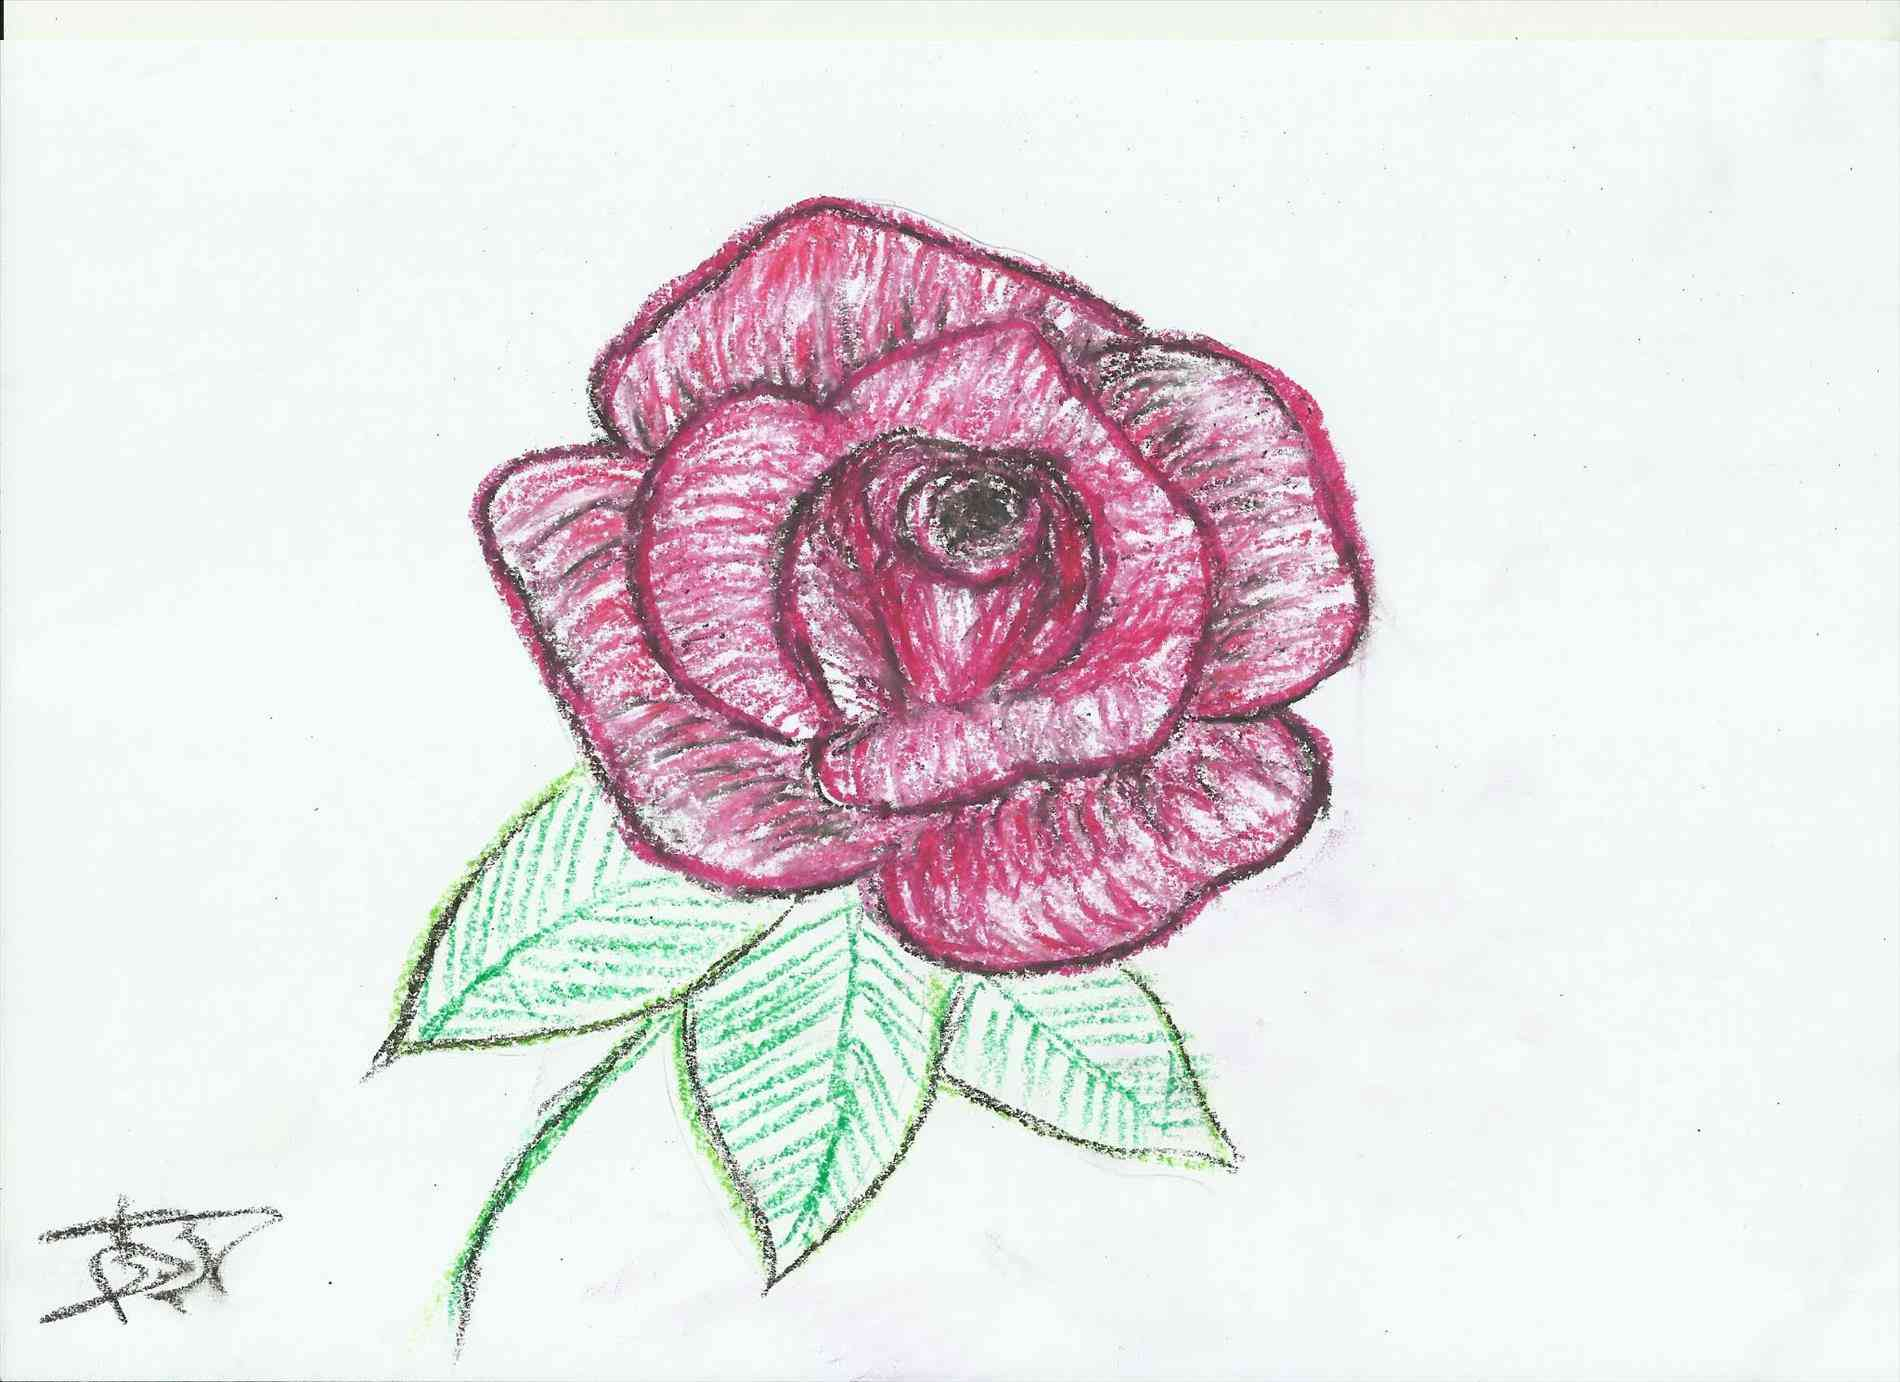 1900x1382 Easy To Draw Rose Flower Drawings Of Roses Easy. How To Draw